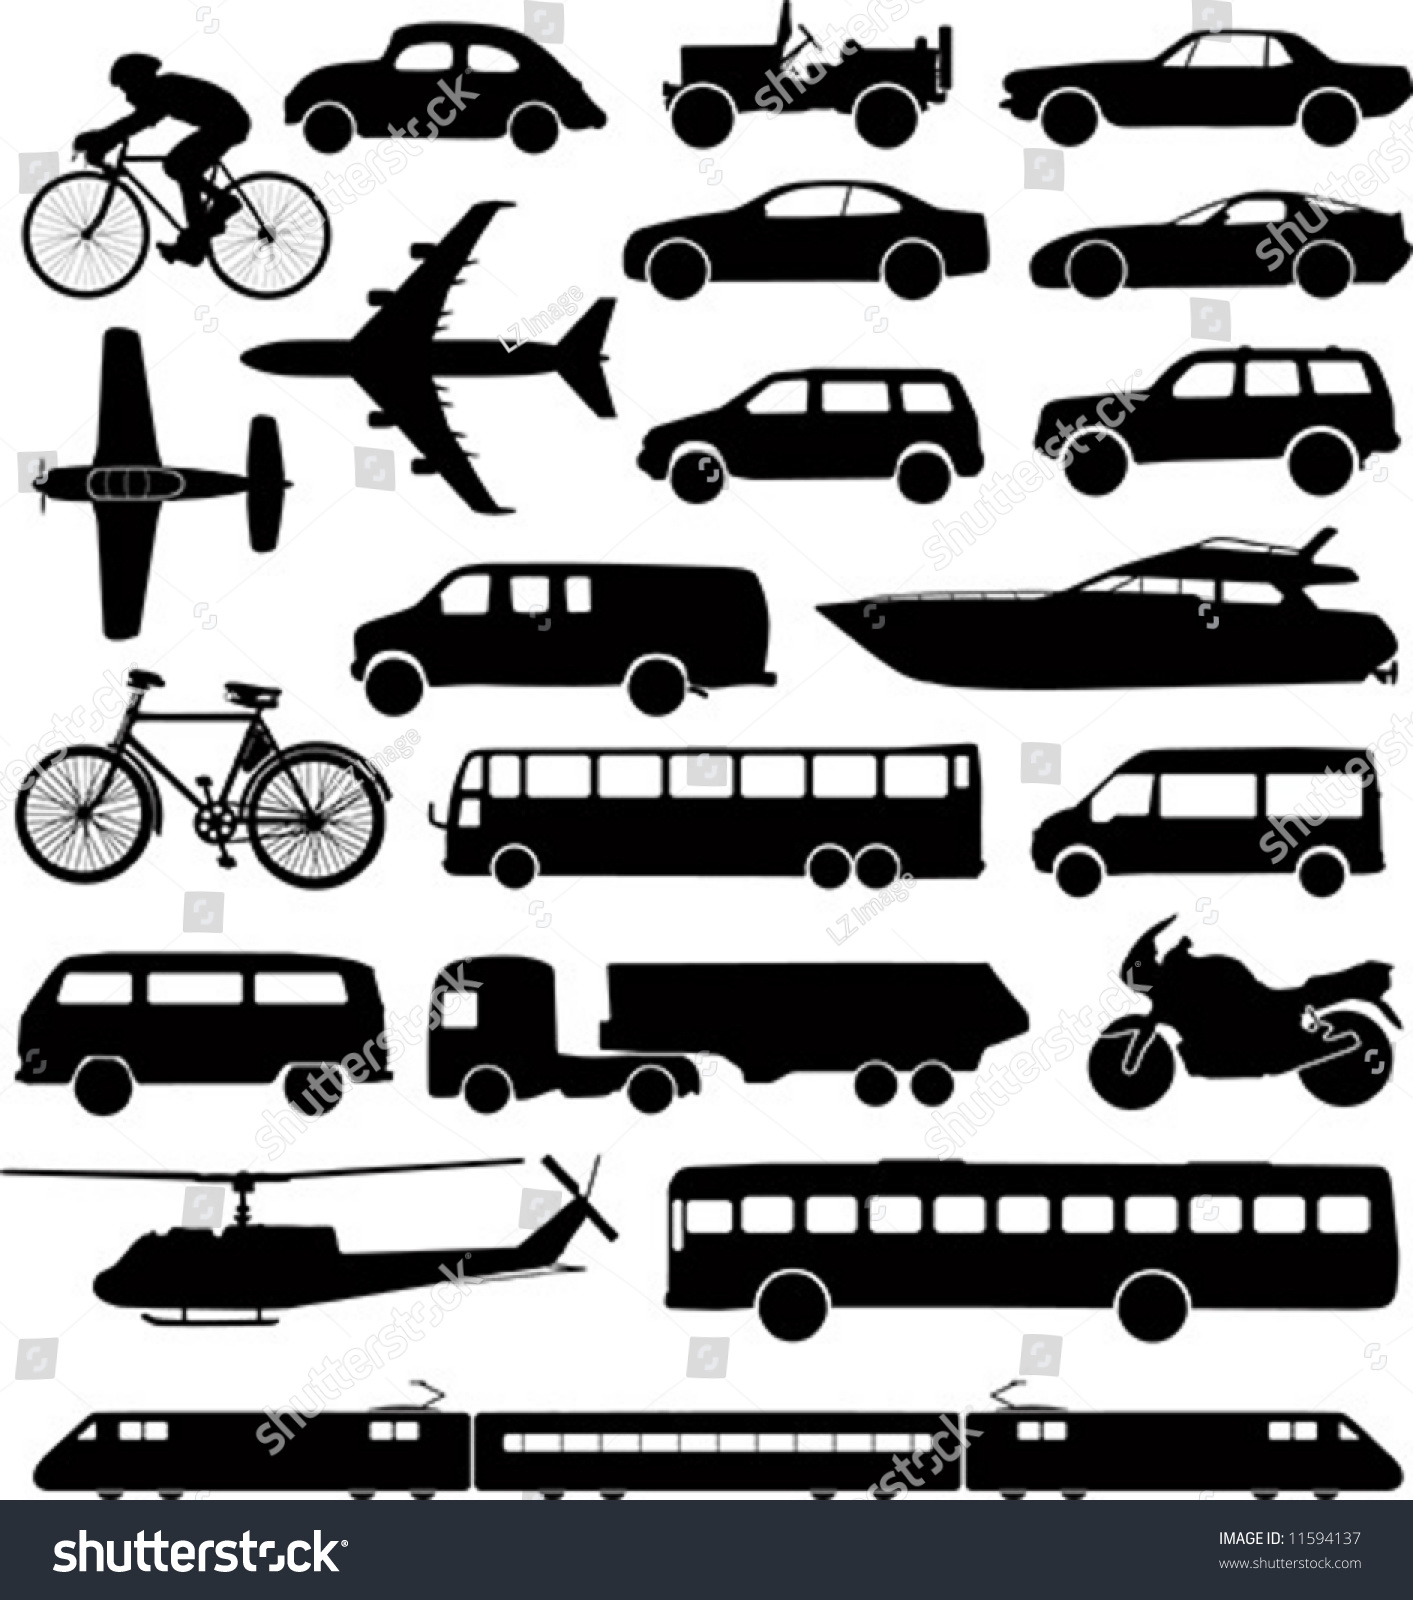 plane boat clipart with Stock Vector Set Of Different Means Of Transportation on Icons And Symbols Transport 33073 Vector Clipart together with Sport Fish Clipart additionally Transparent Wave furthermore Cartoon Outline ysvmhvueu4MVwgitDZxxN 7CO6IwRFtNcTYJn7gX8Tunw together with Large Shipping Boat Carrying Shipping Containers.